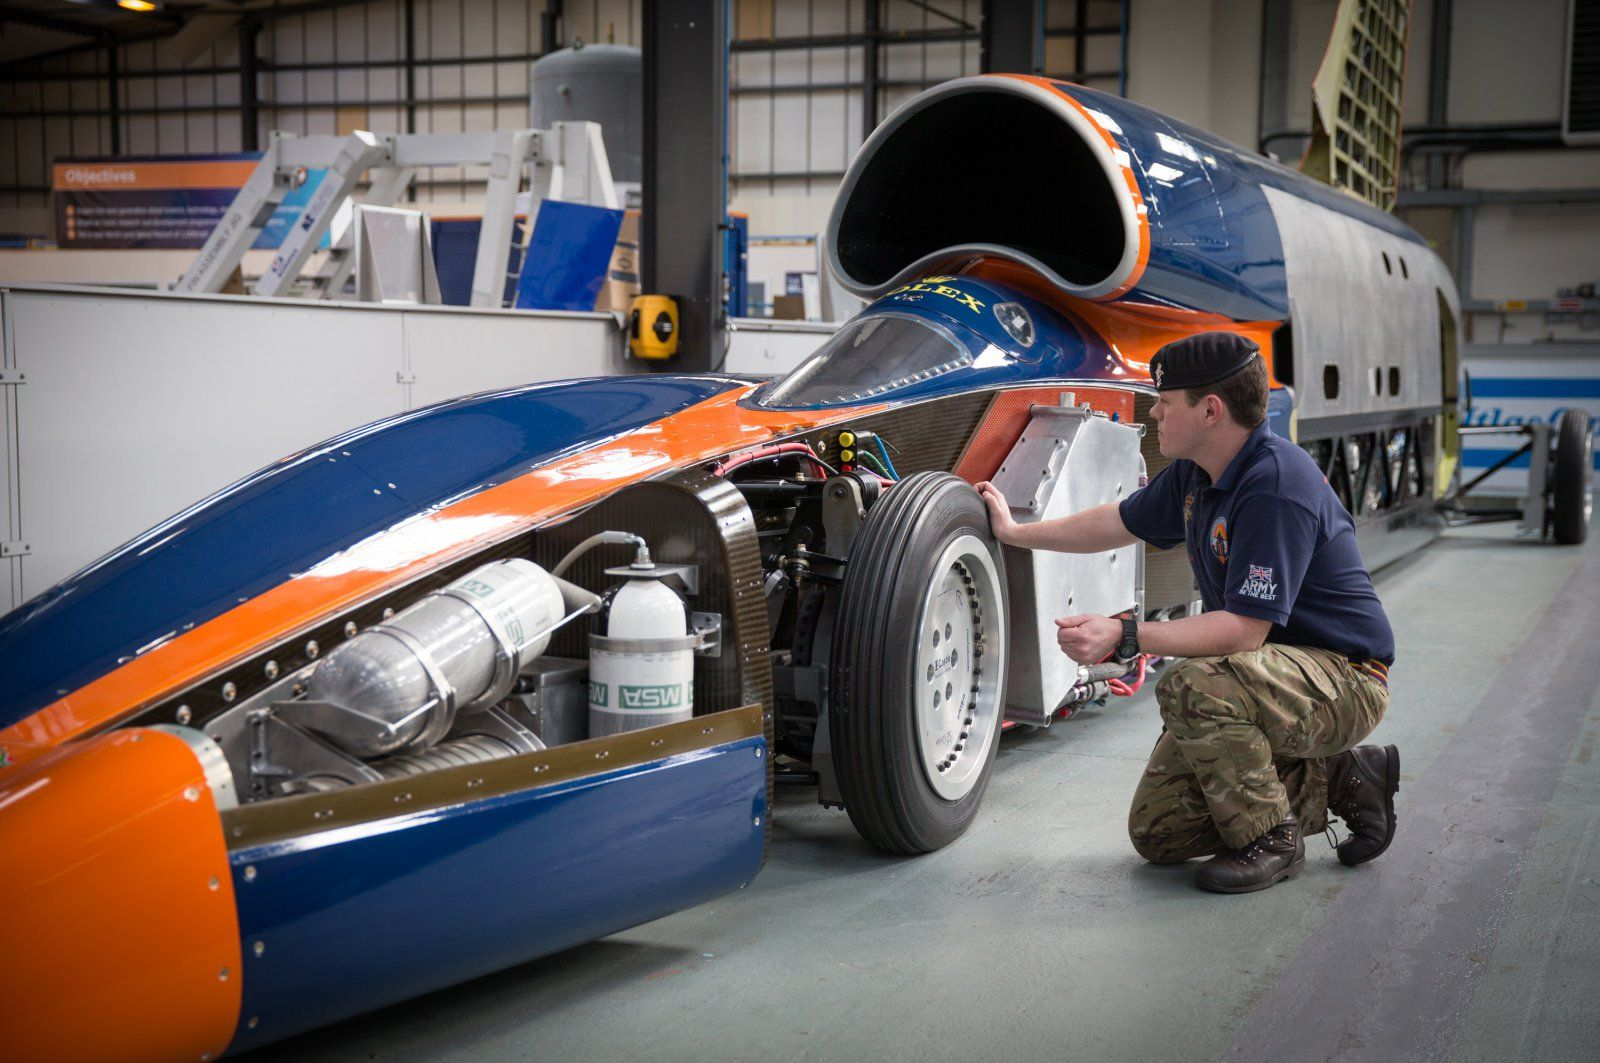 bloodhound's land speed record revivedchinese car giant - http